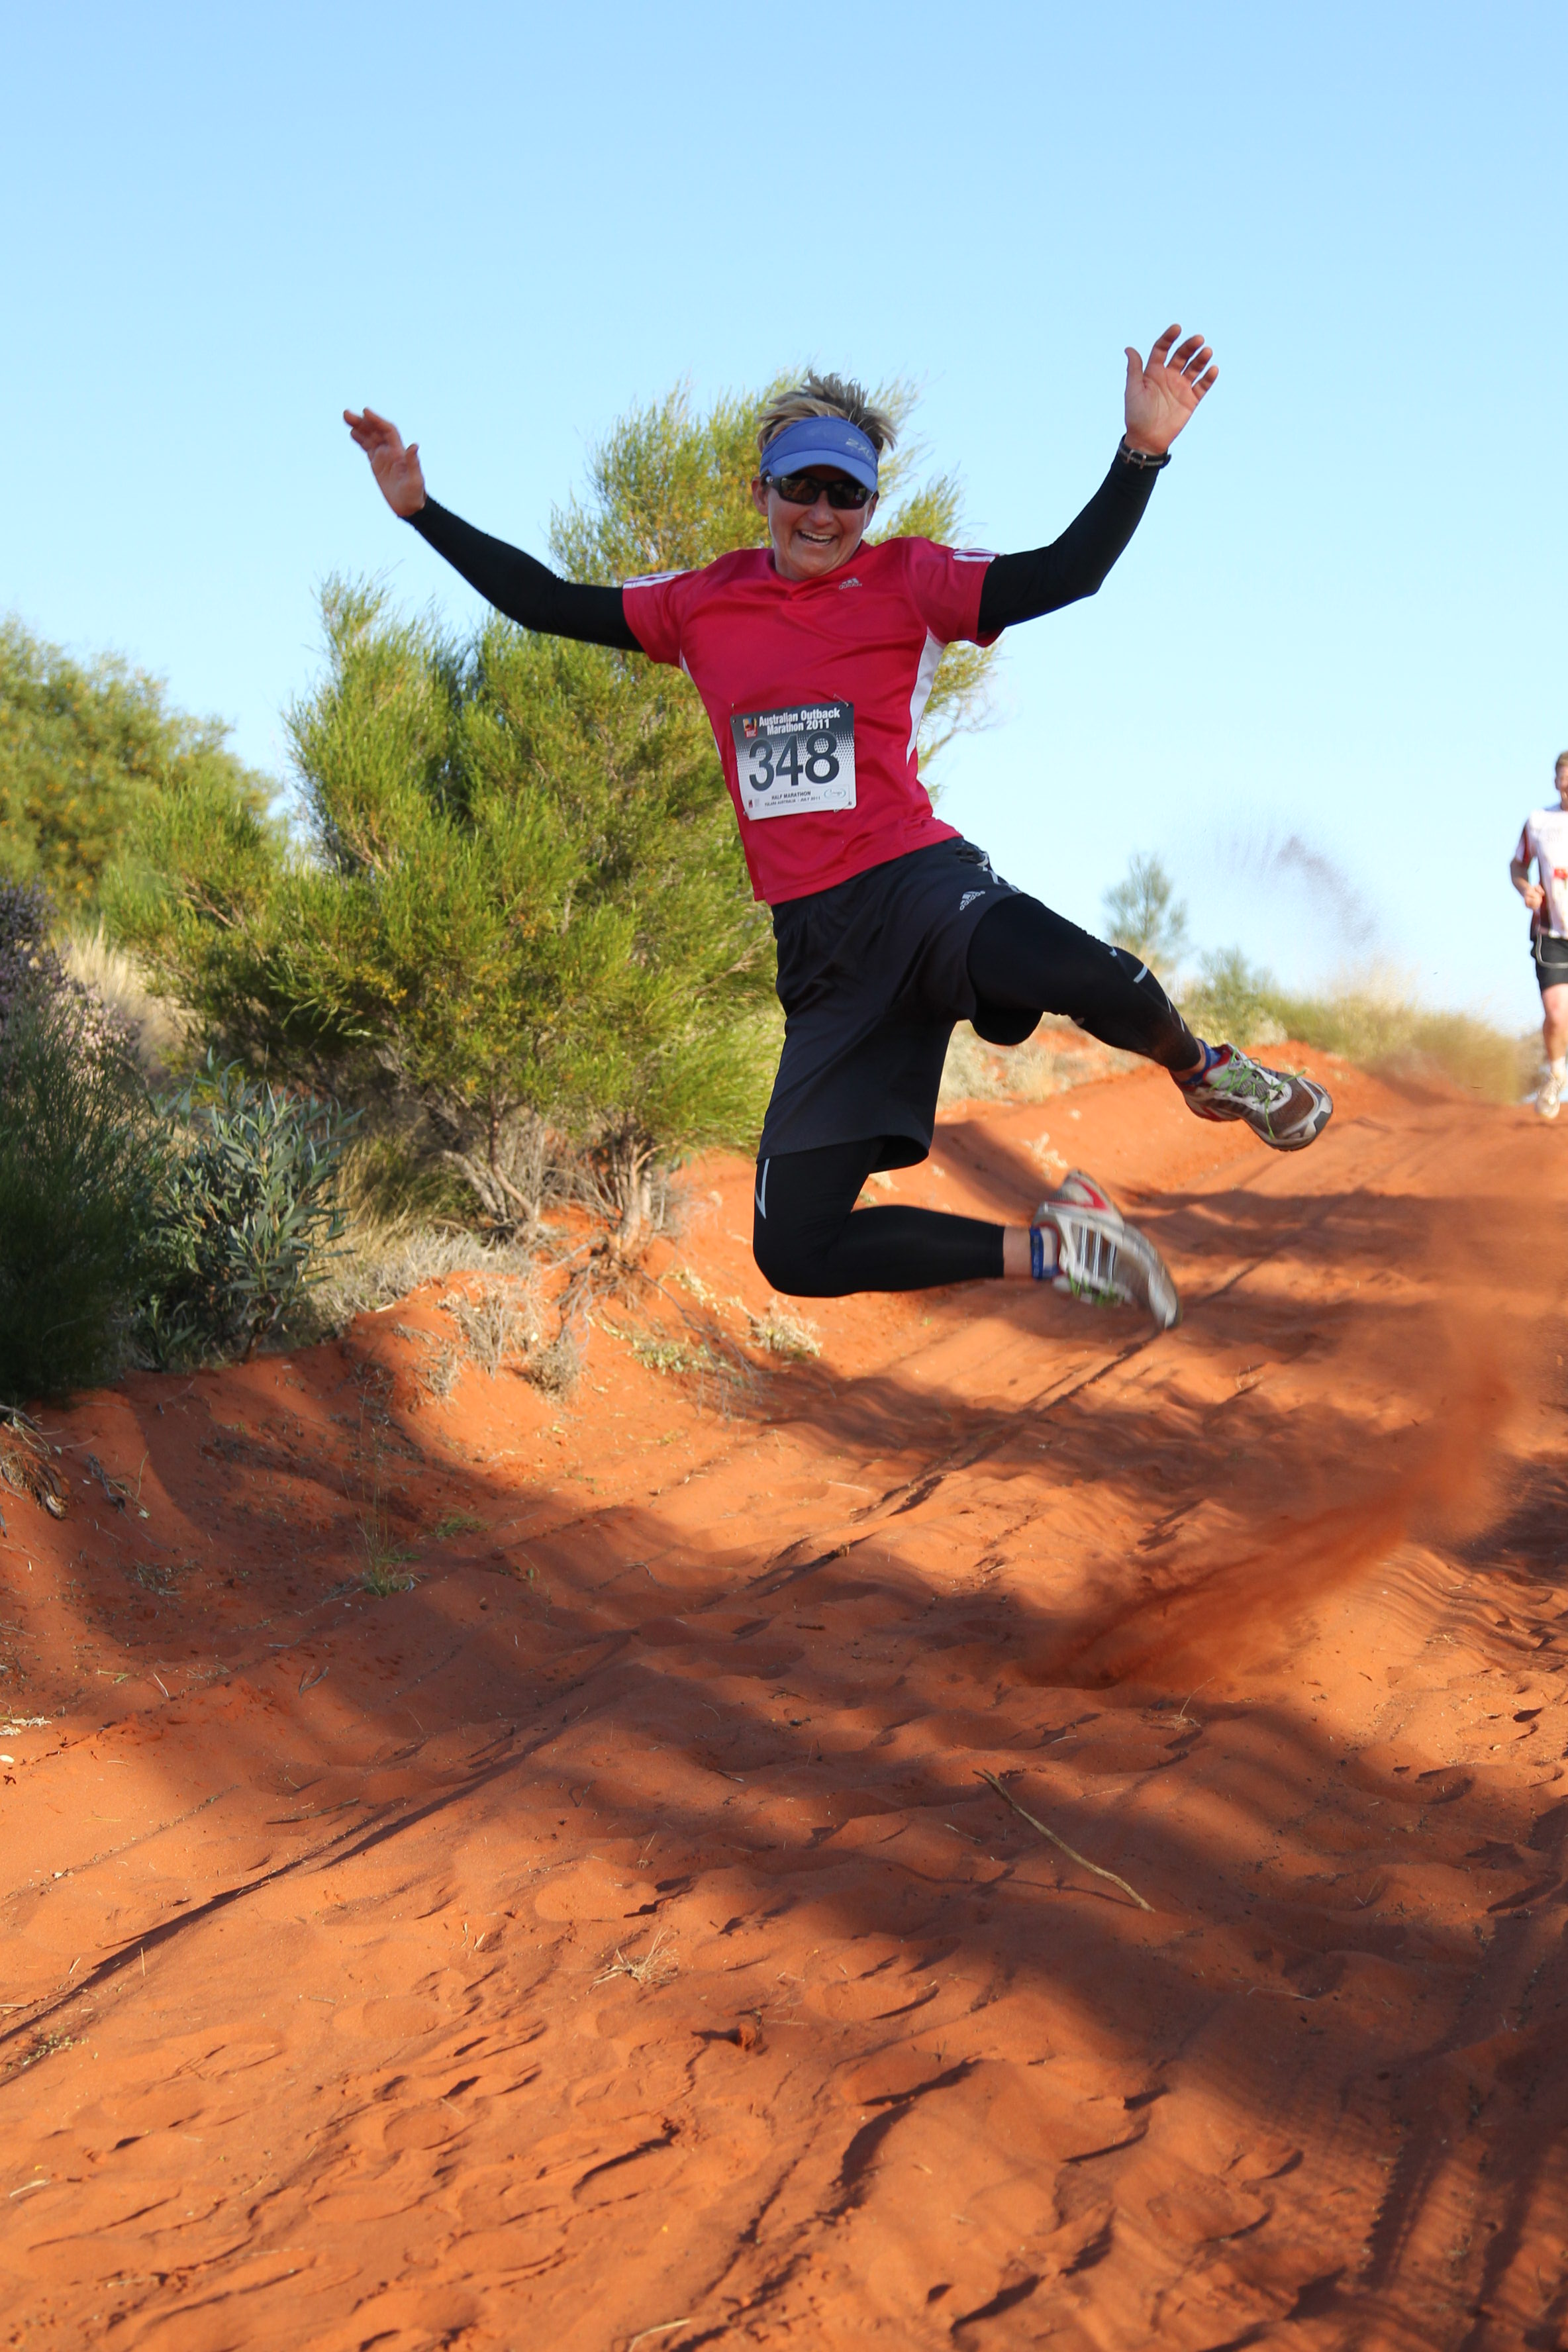 A woman jumps while running the Australia Outback Marathon